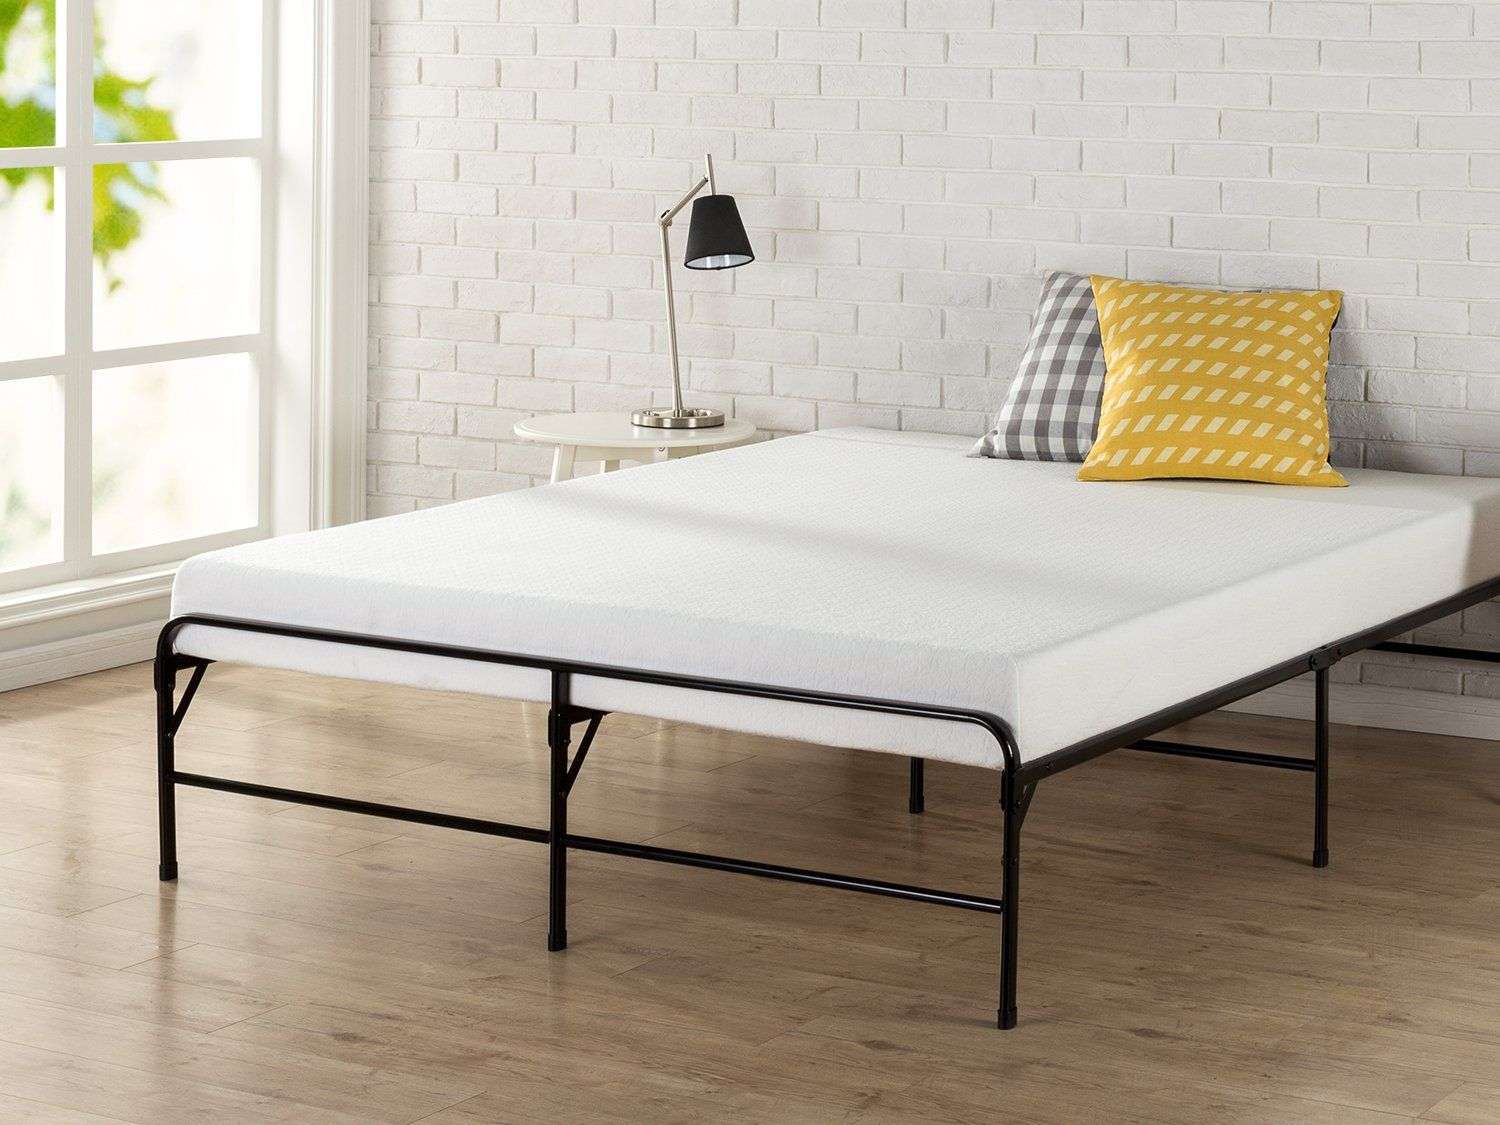 Zinus inch bifold platform bed frame folding mattress